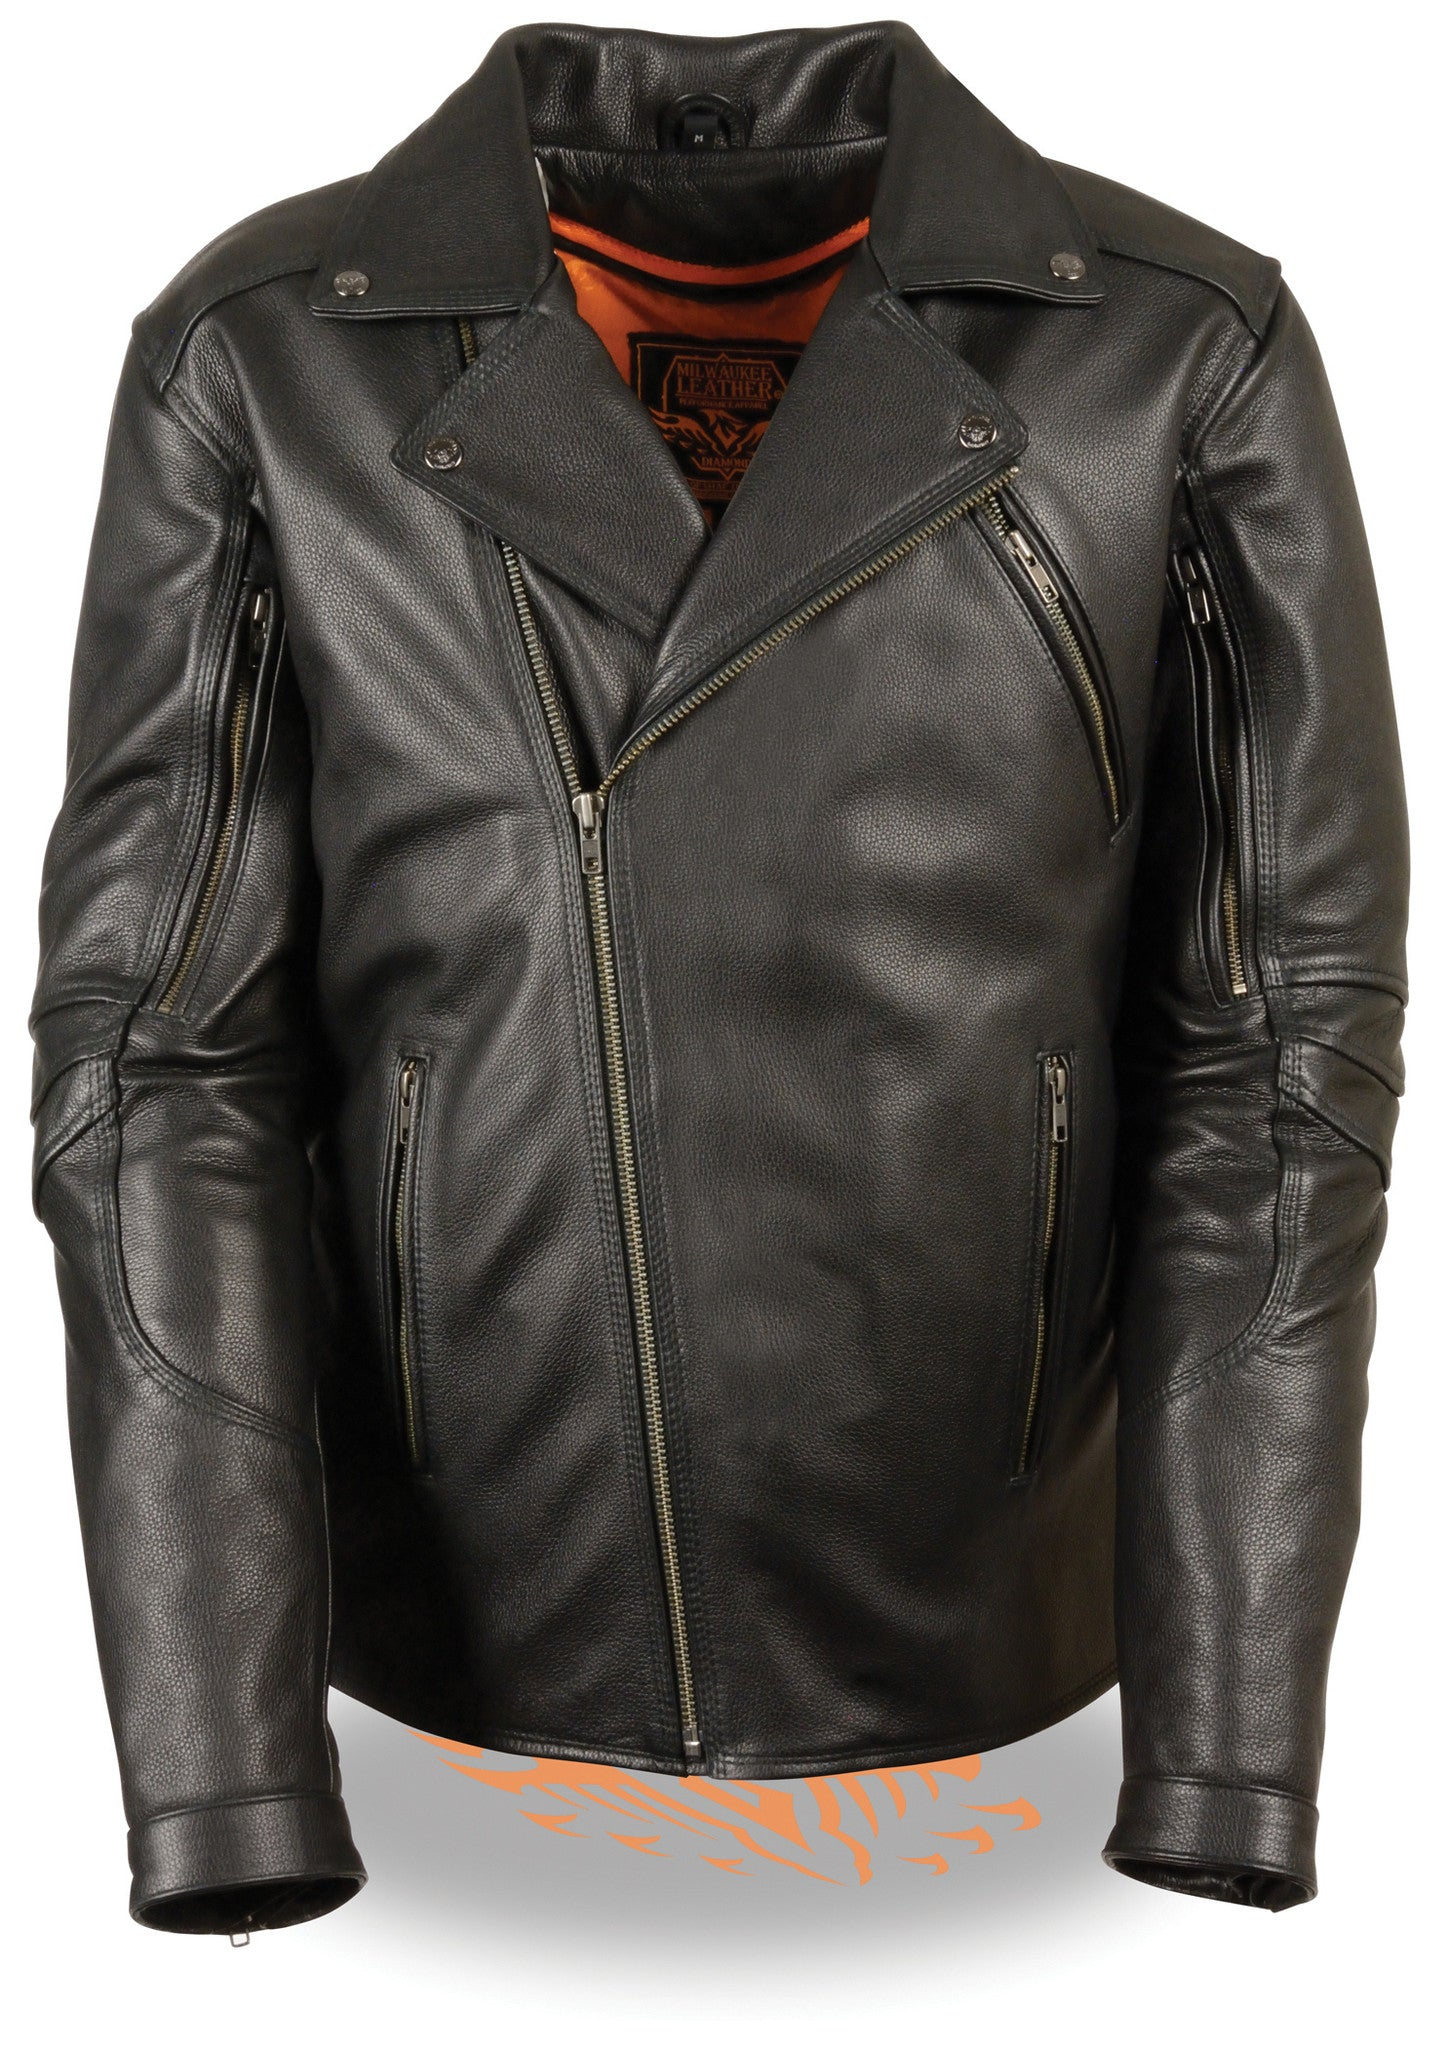 MEN'S MOTORCYCLE BELTLESS BIKER POLICE STYLE LEATHER JACKET